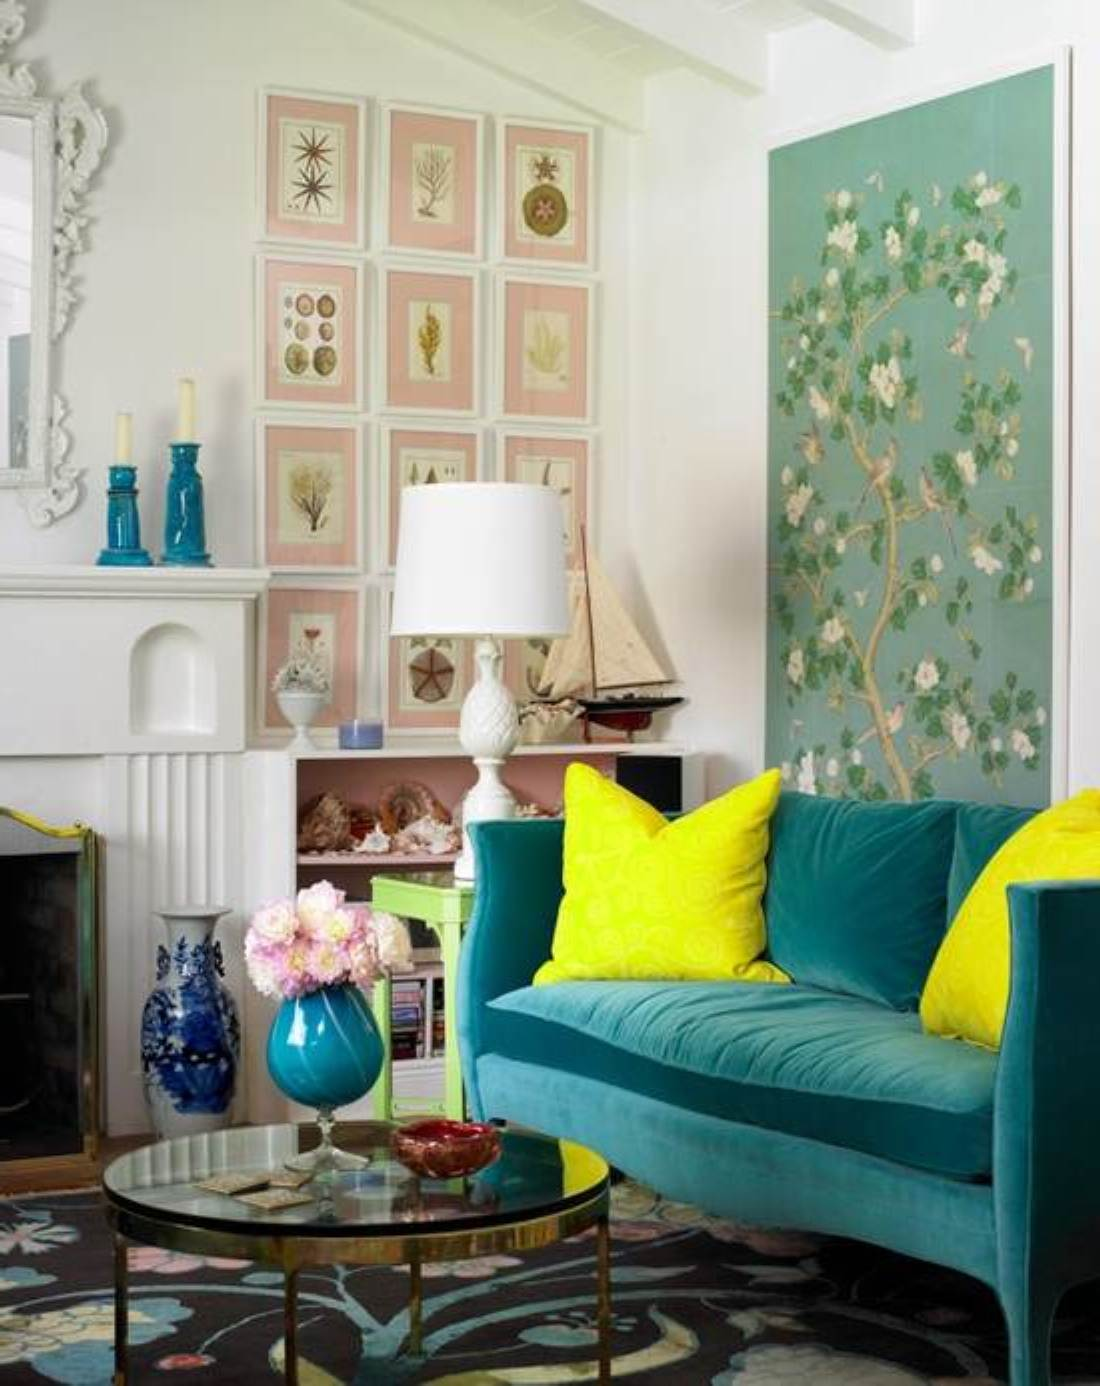 Some easy rules of small space decorating live diy ideas Small living room decorating